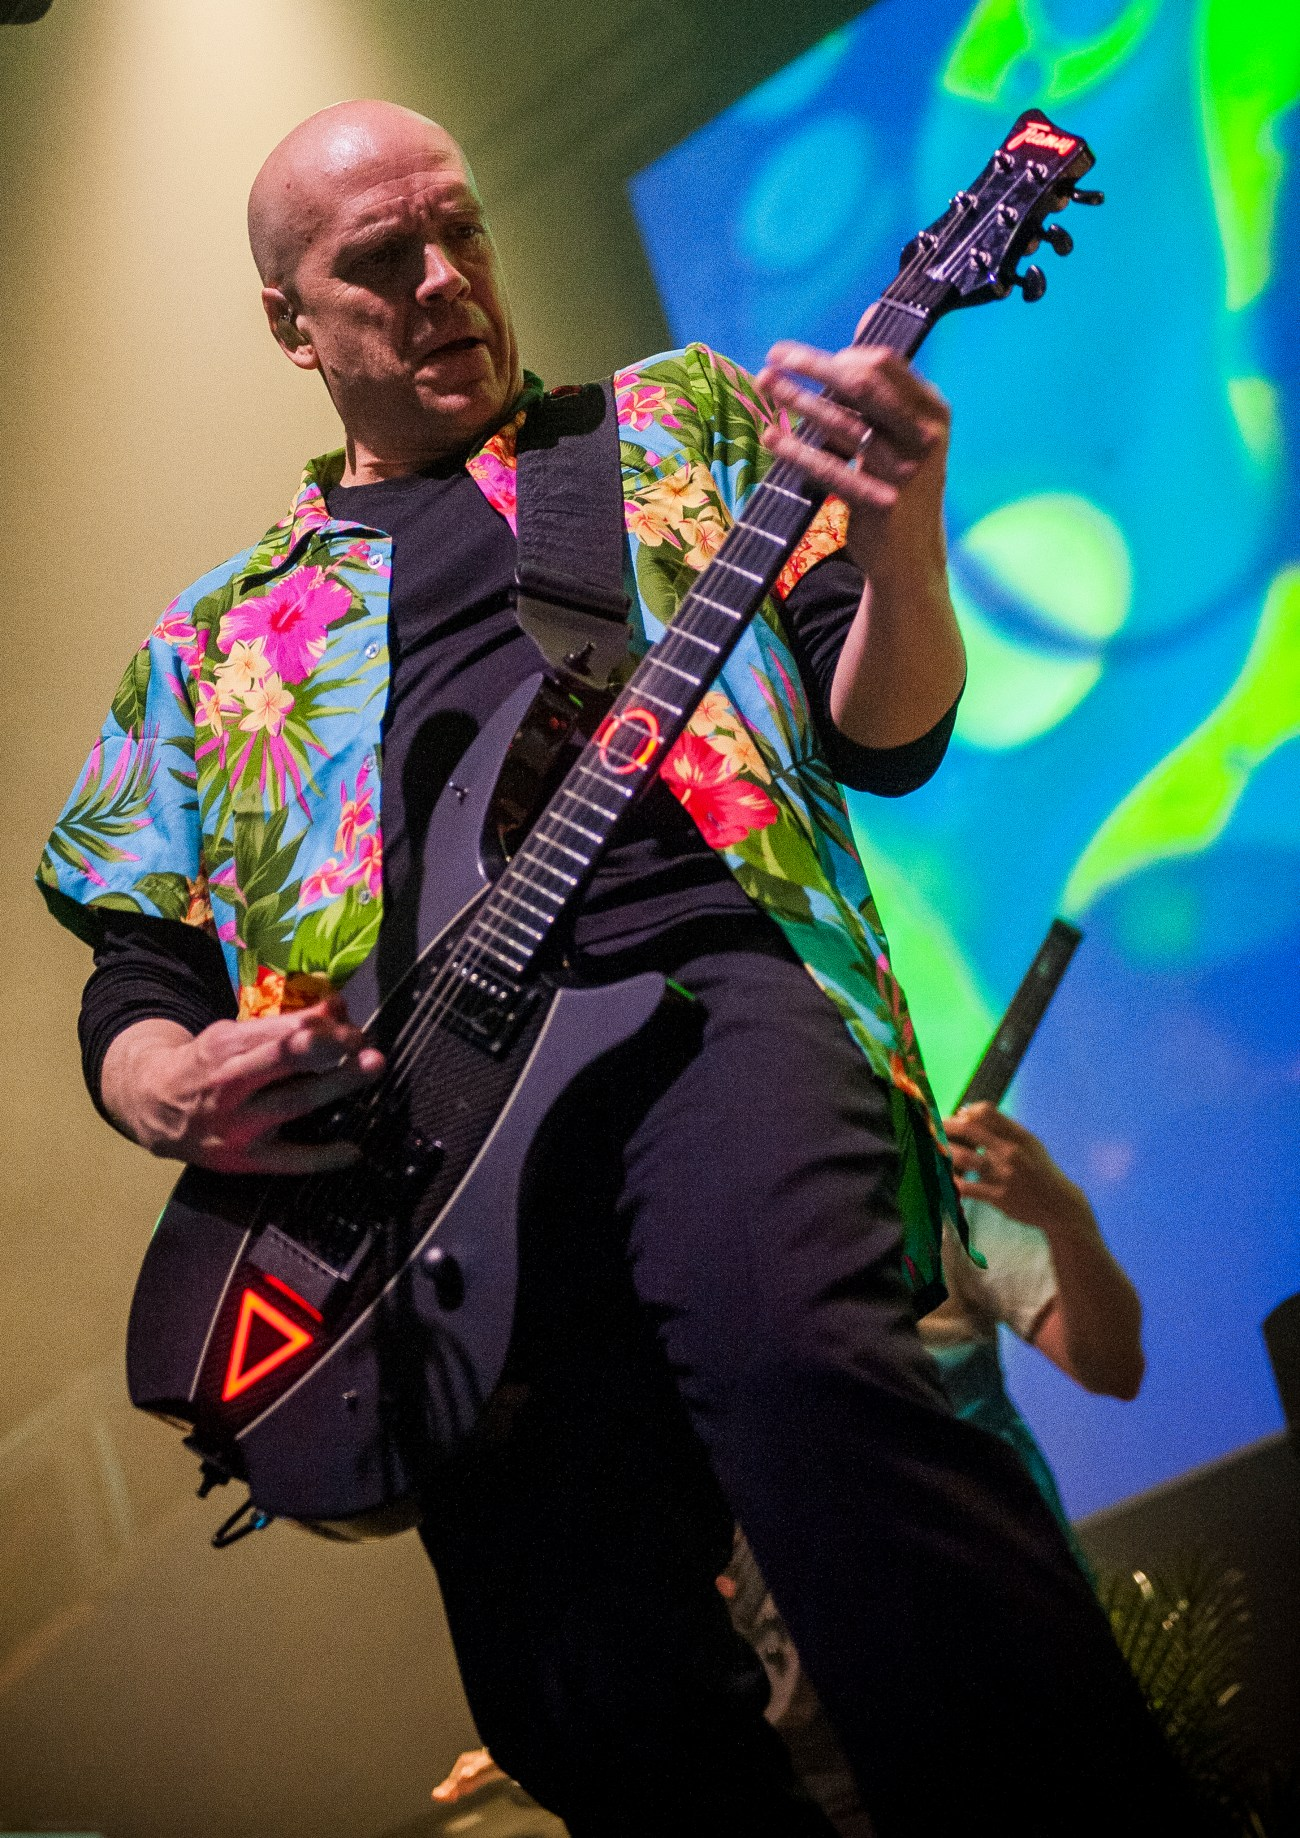 devin townsend manchester albert hall 10.12.19 by mike ainscoe 14